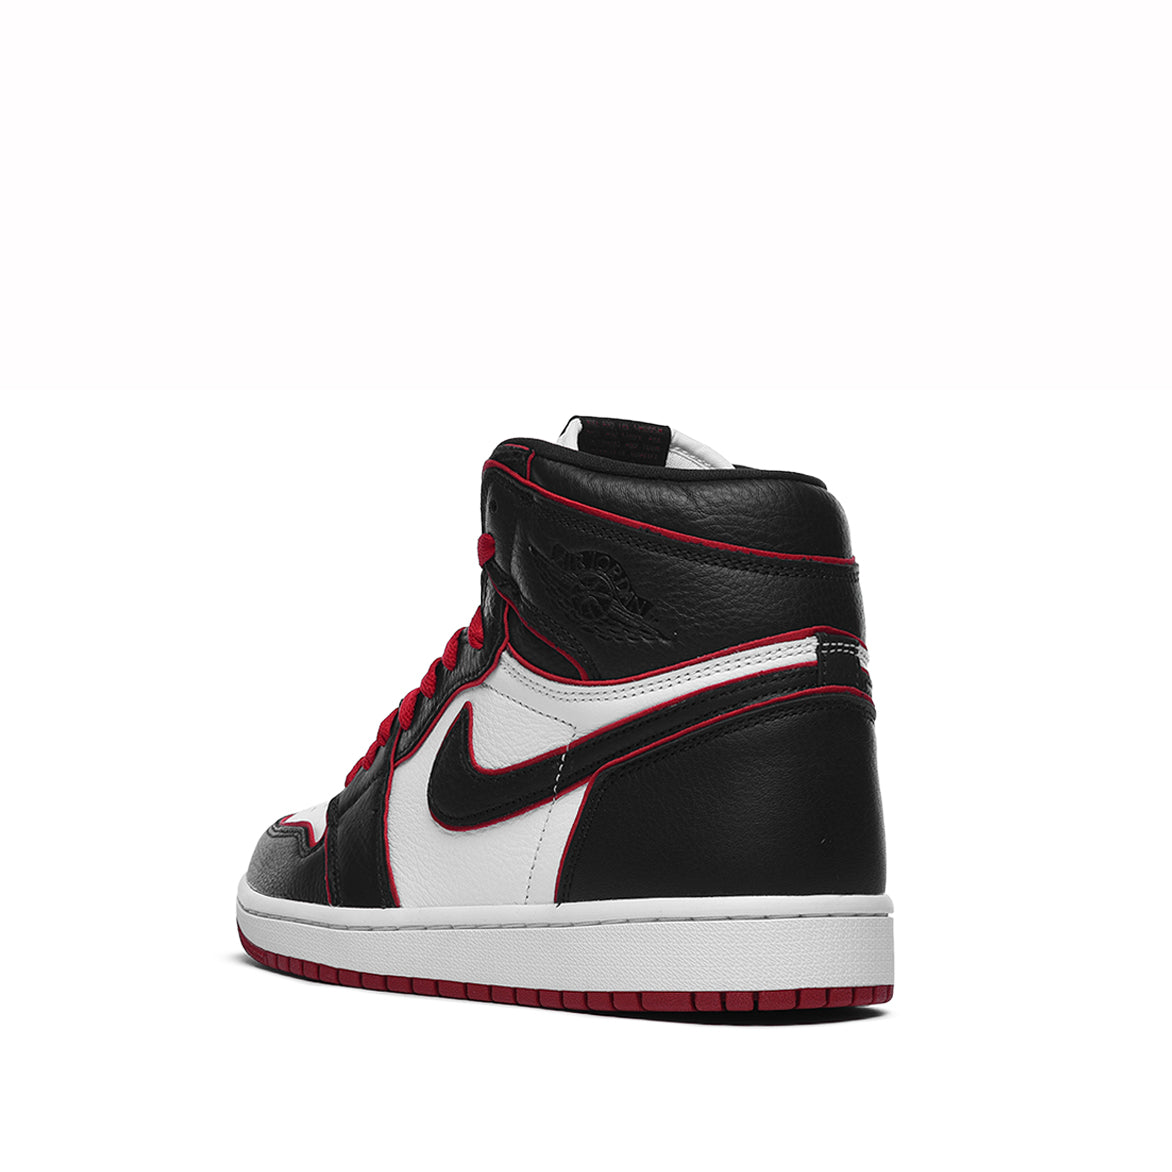 "AIR JORDAN 1 RETRO HIGH OG (GS) ""BLOODLINE"""